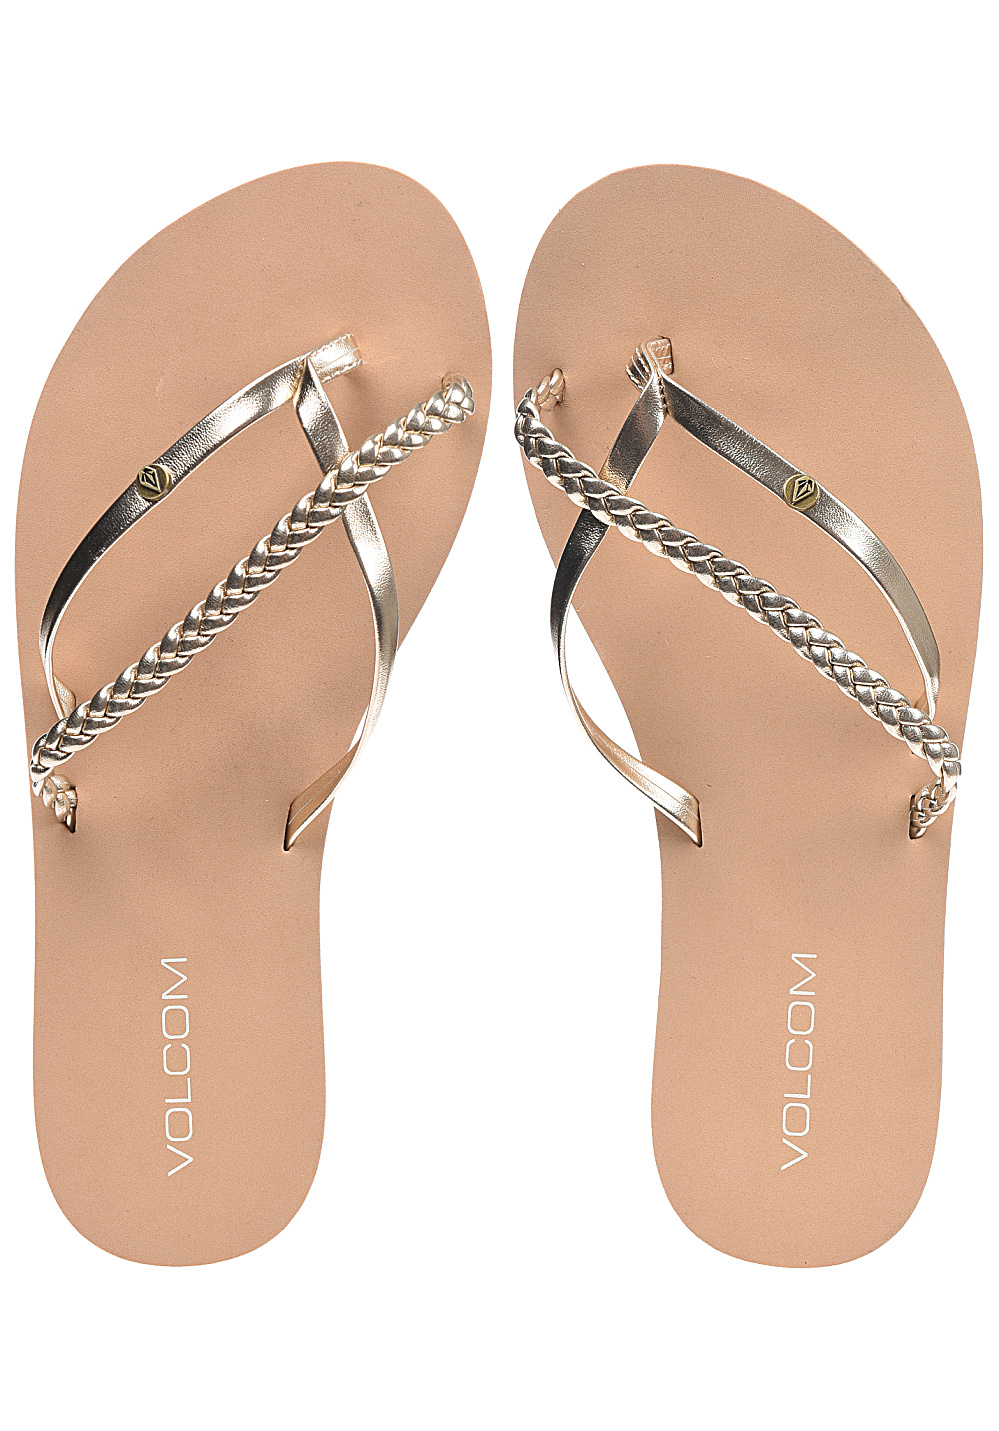 1c2e34dc7be6f Next. -29%. This product is currently out of stock. Volcom. Thrills -  Sandals for Women